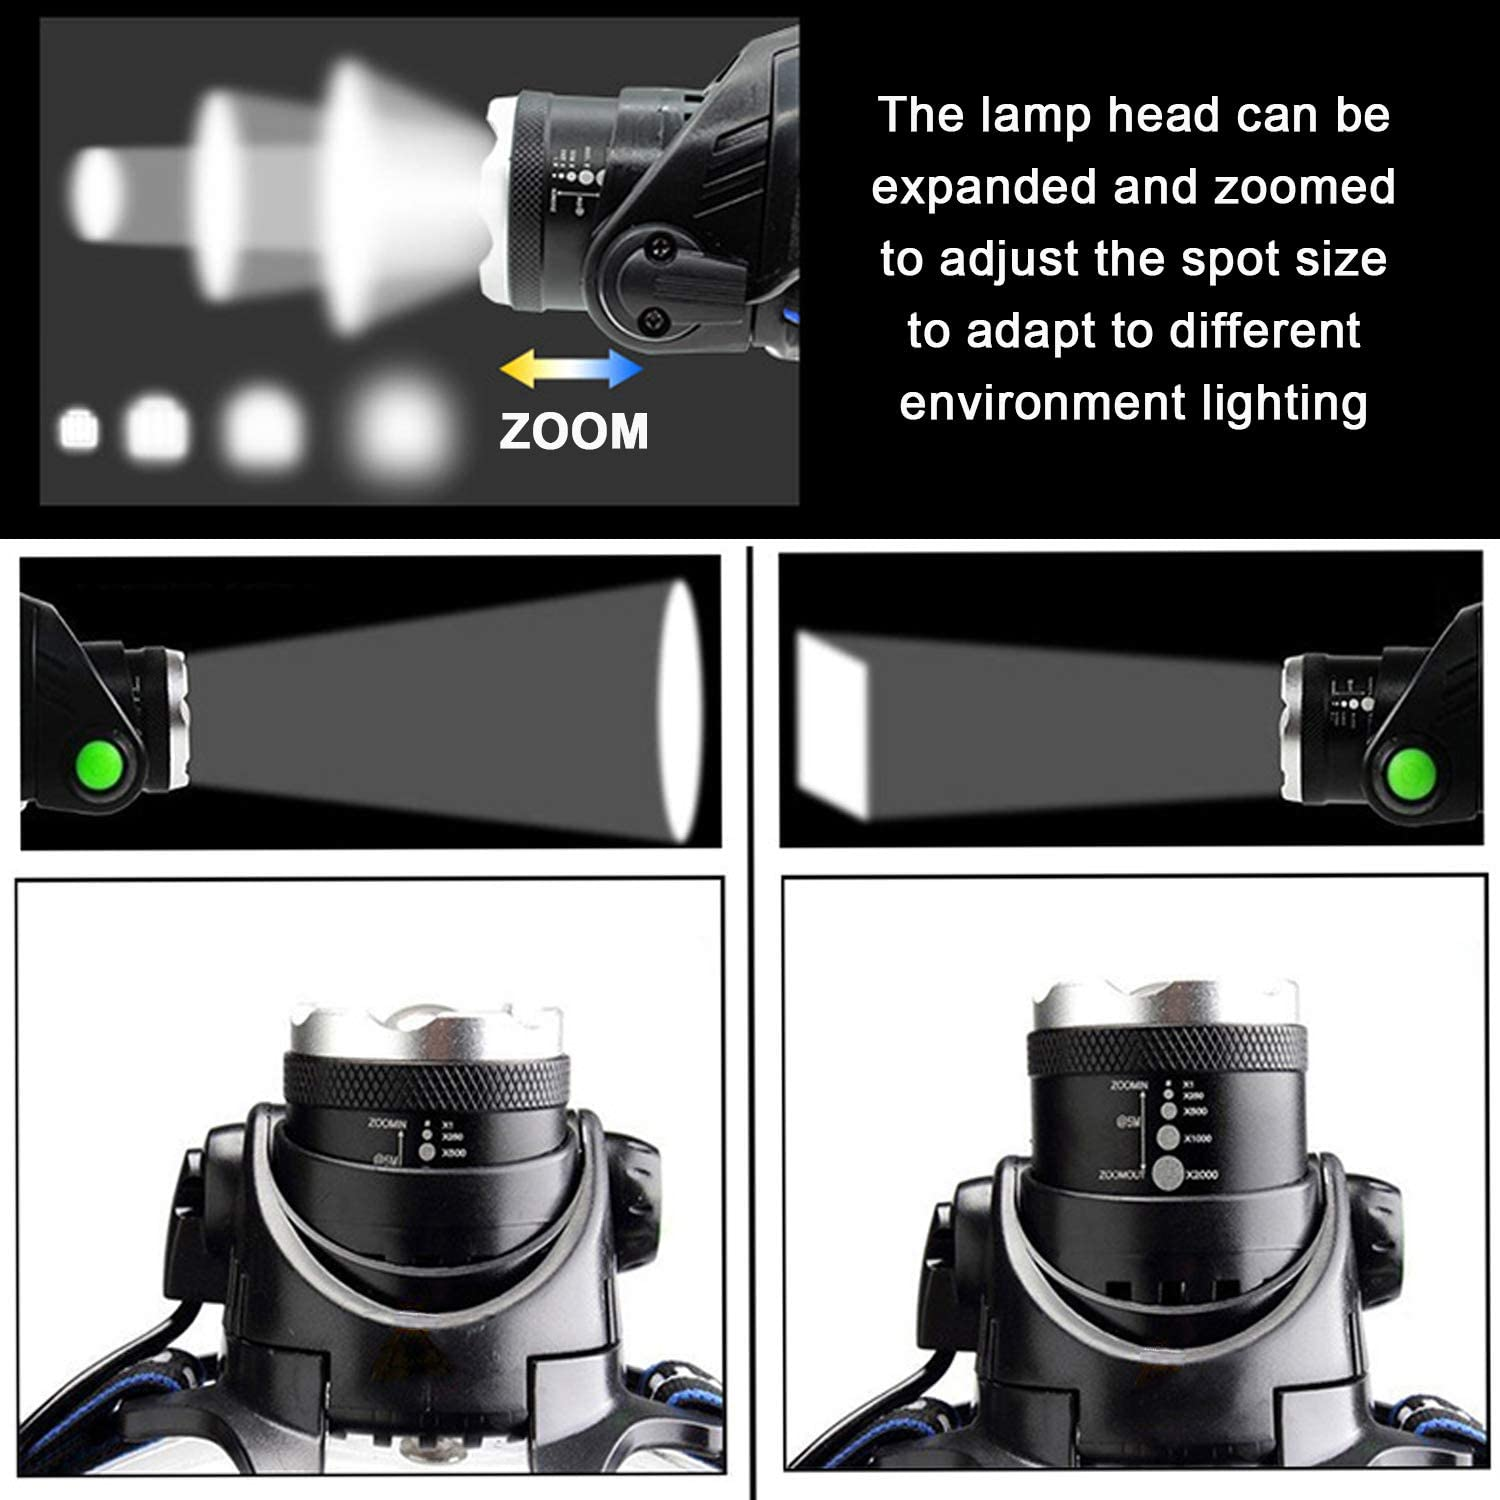 Emergency Light Outdoors 1Pcs+6Pcs Battery Running CASTNOO Headlamp,T6 LED Super Bright USB Rechargeable Zoomable Waterproof Headlamp with 3 Modes Light Best for Camping